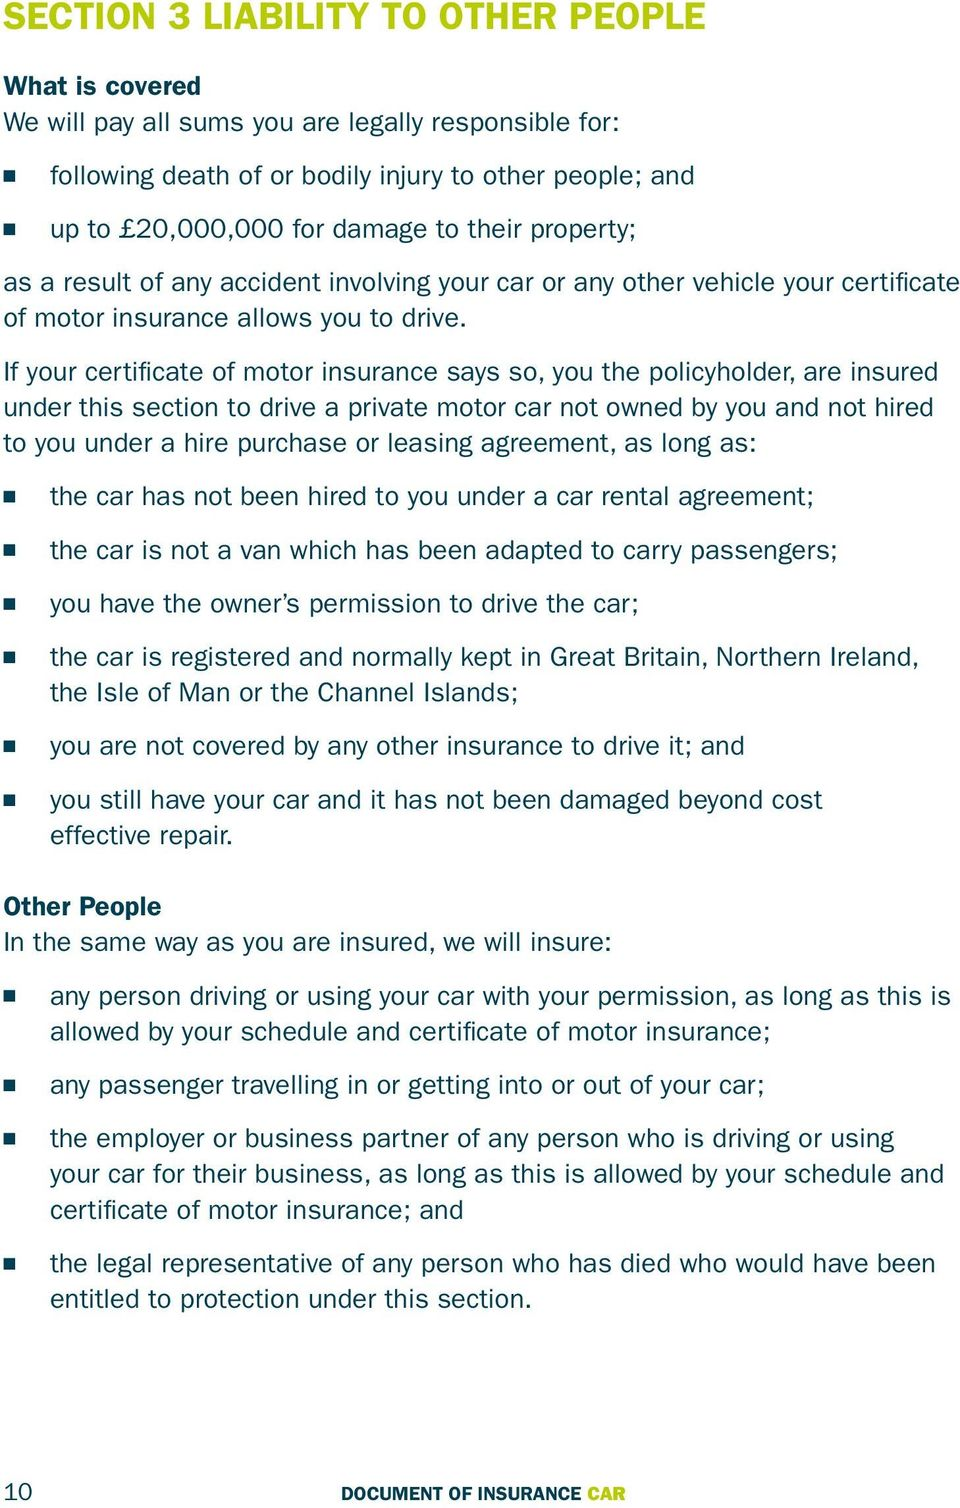 If your certificate of motor isurace says so, you the policyholder, are isured uder this sectio to drive a private motor car ot owed by you ad ot hired to you uder a hire purchase or leasig agreemet,